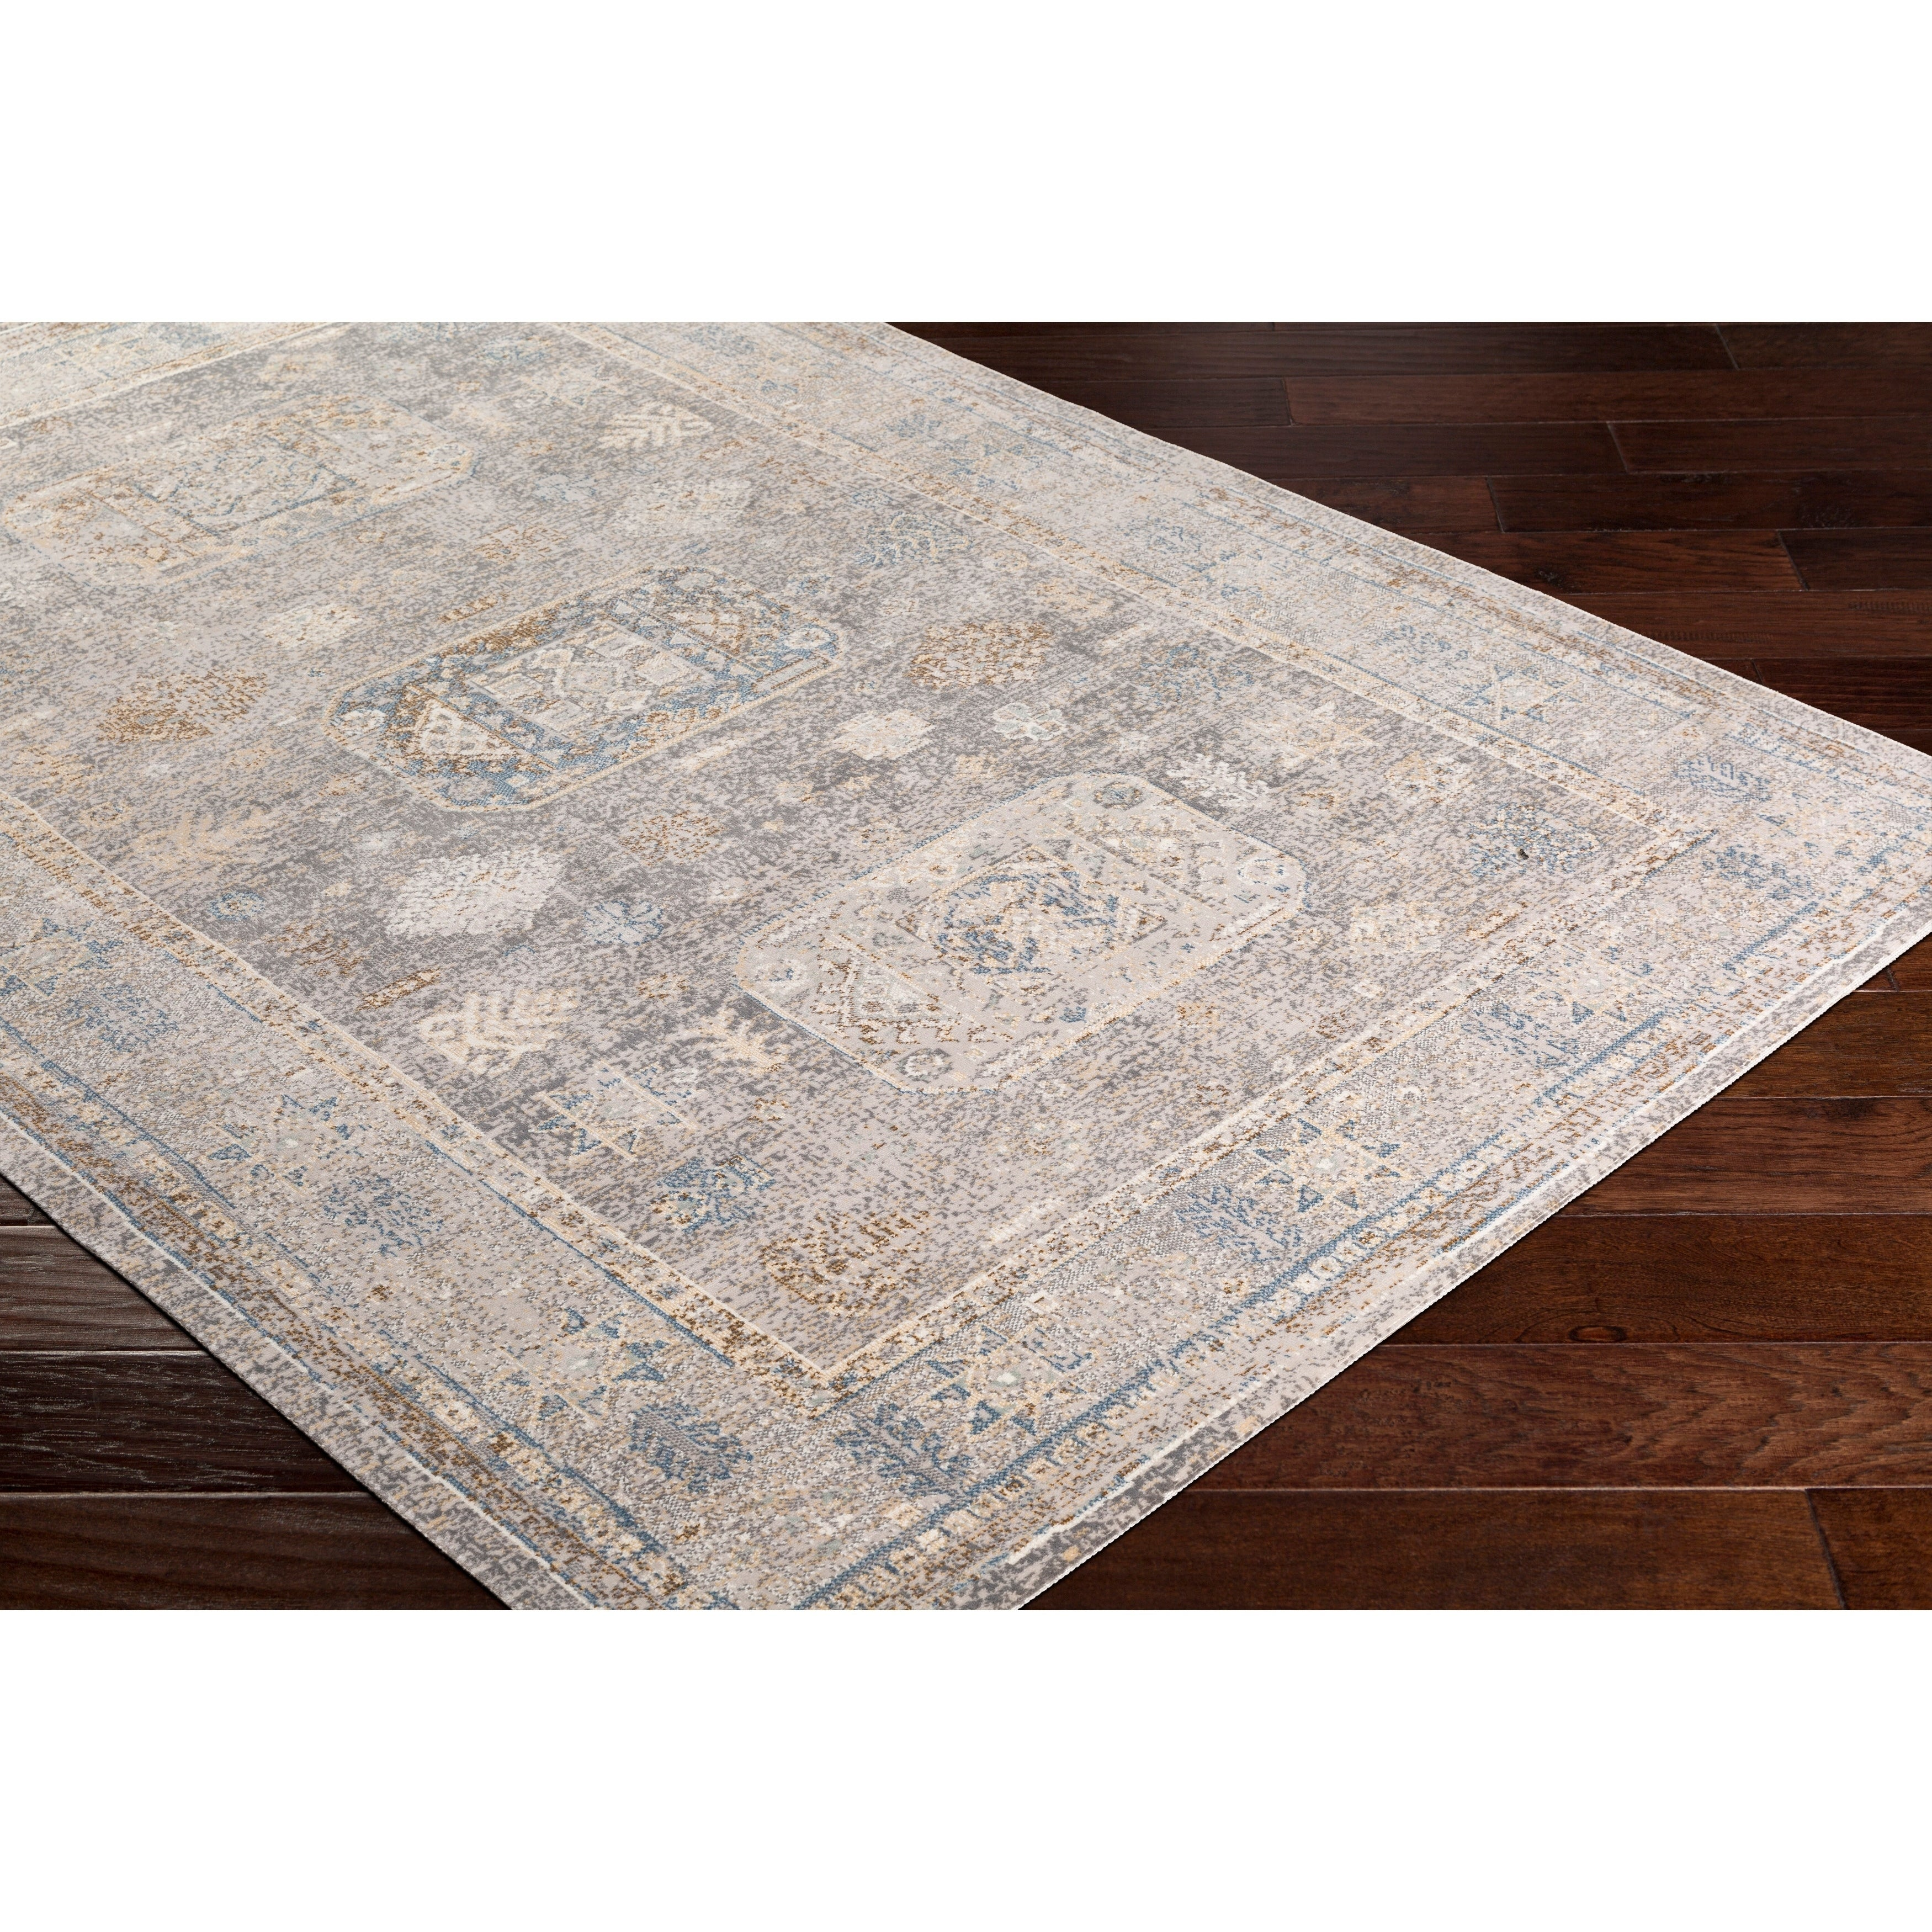 Willoby Vintage Oriental Charcoal Area Rug 5 3 X 7 3 On Sale Overstock 17095374